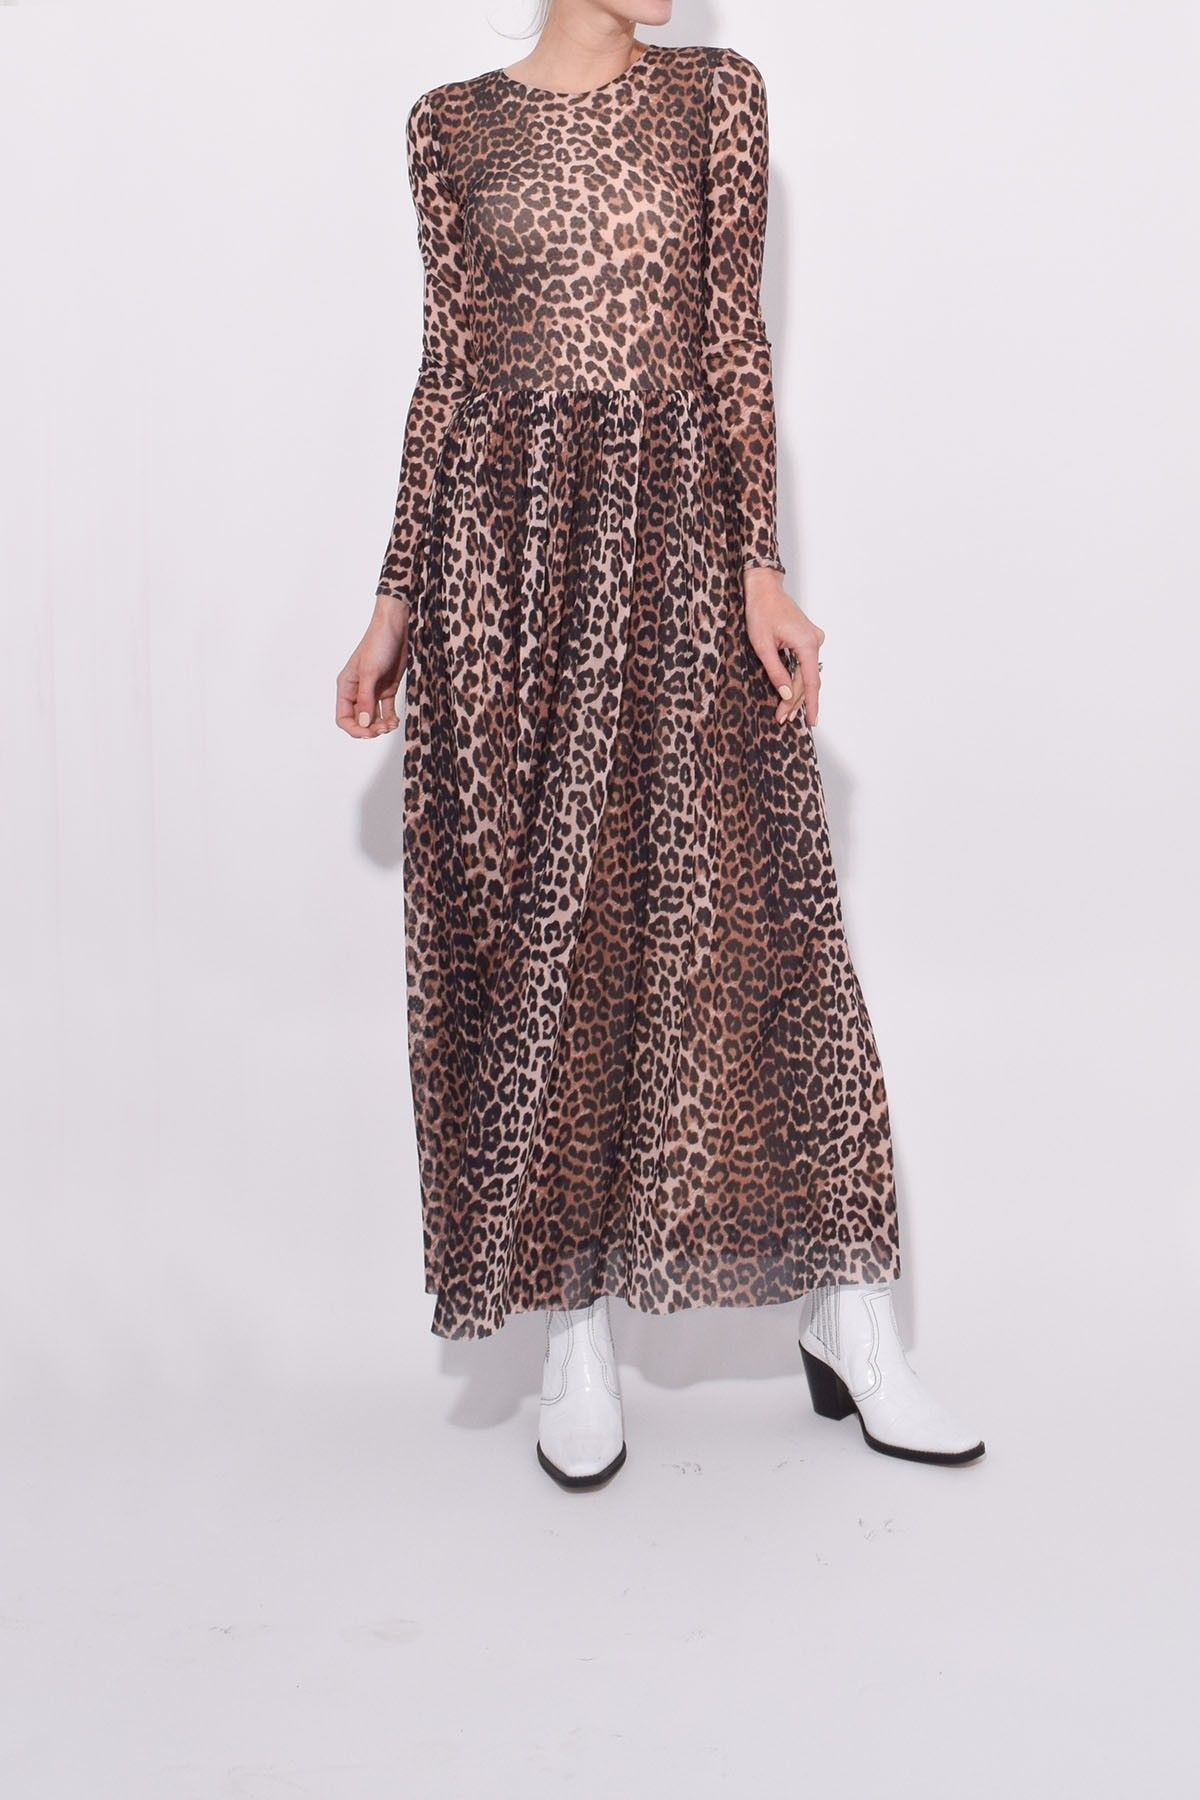 c2c17590 Ganni Printed Mesh Maxi Dress in Leopard | Hampden Dresses in 2019 ...